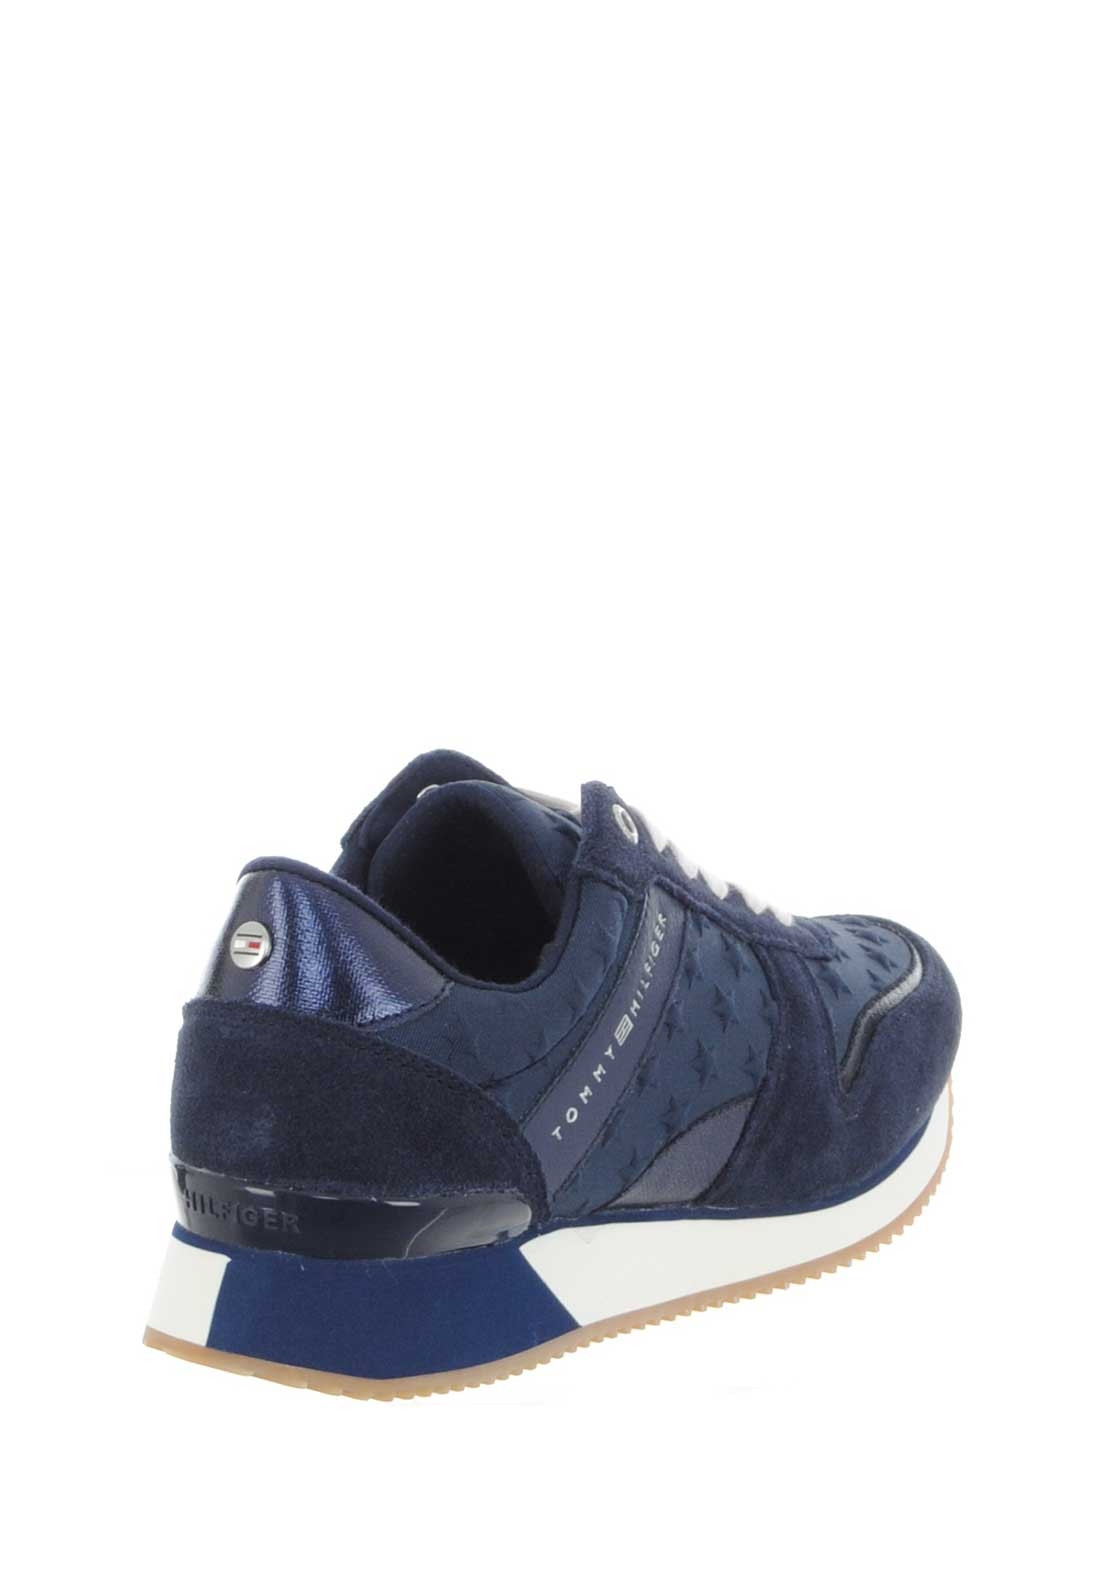 250a1d3284c441 Tommy Hilfiger Women Star Leather Trainers